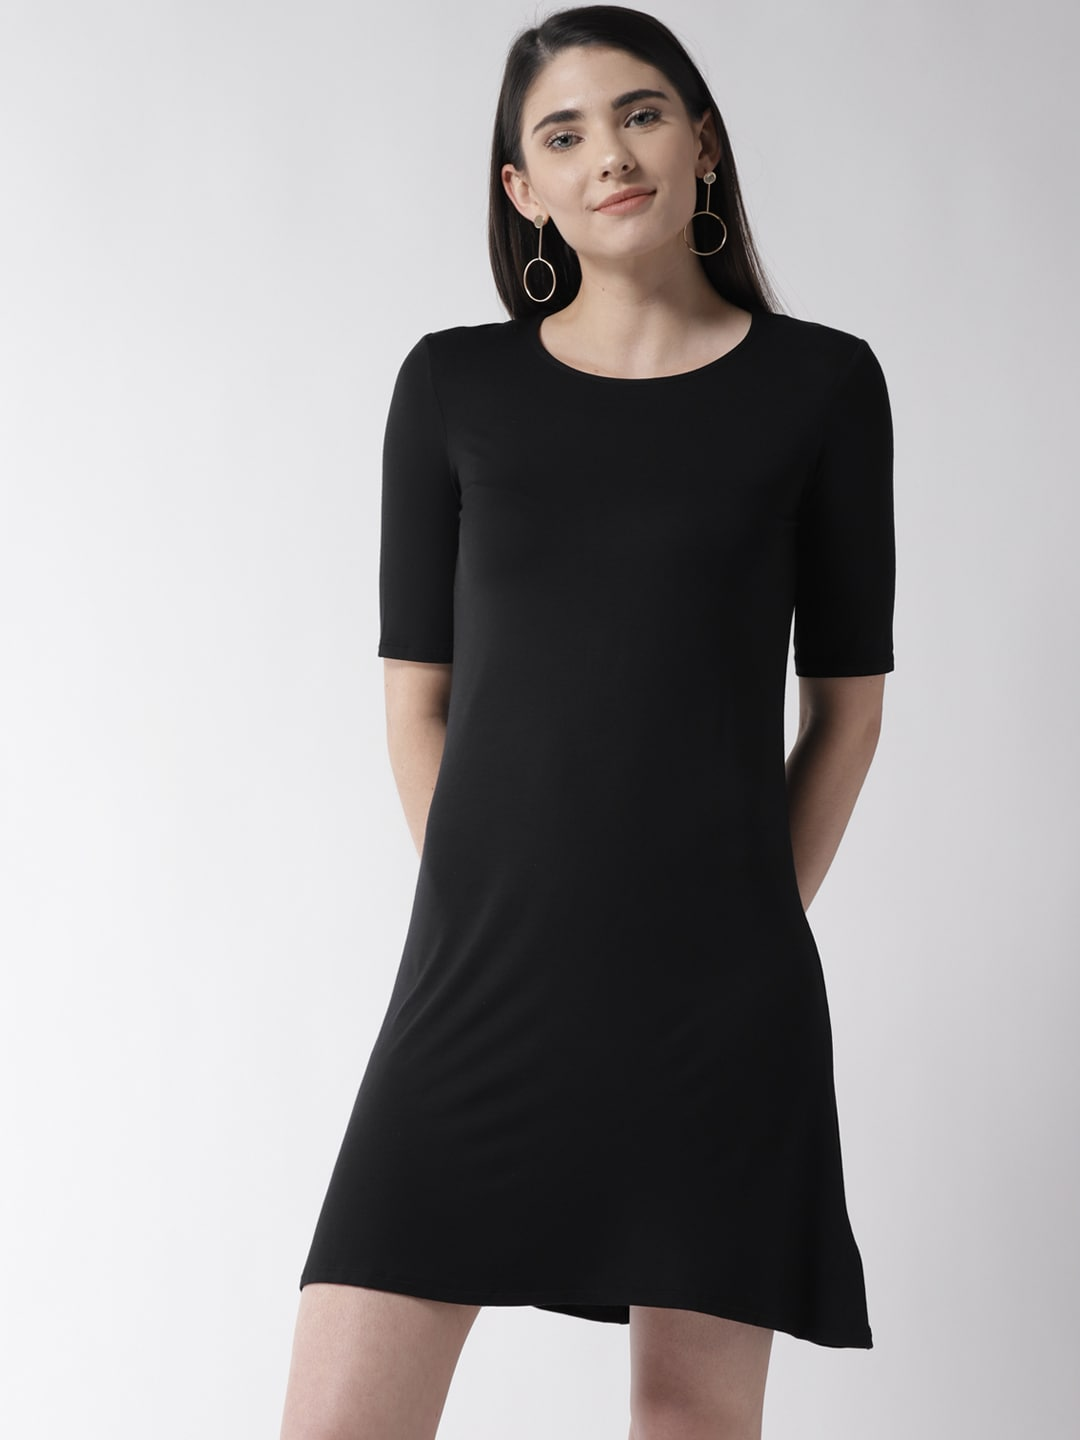 56ceaaf6e21 Black Dress - Buy Black Dresses For Women in India